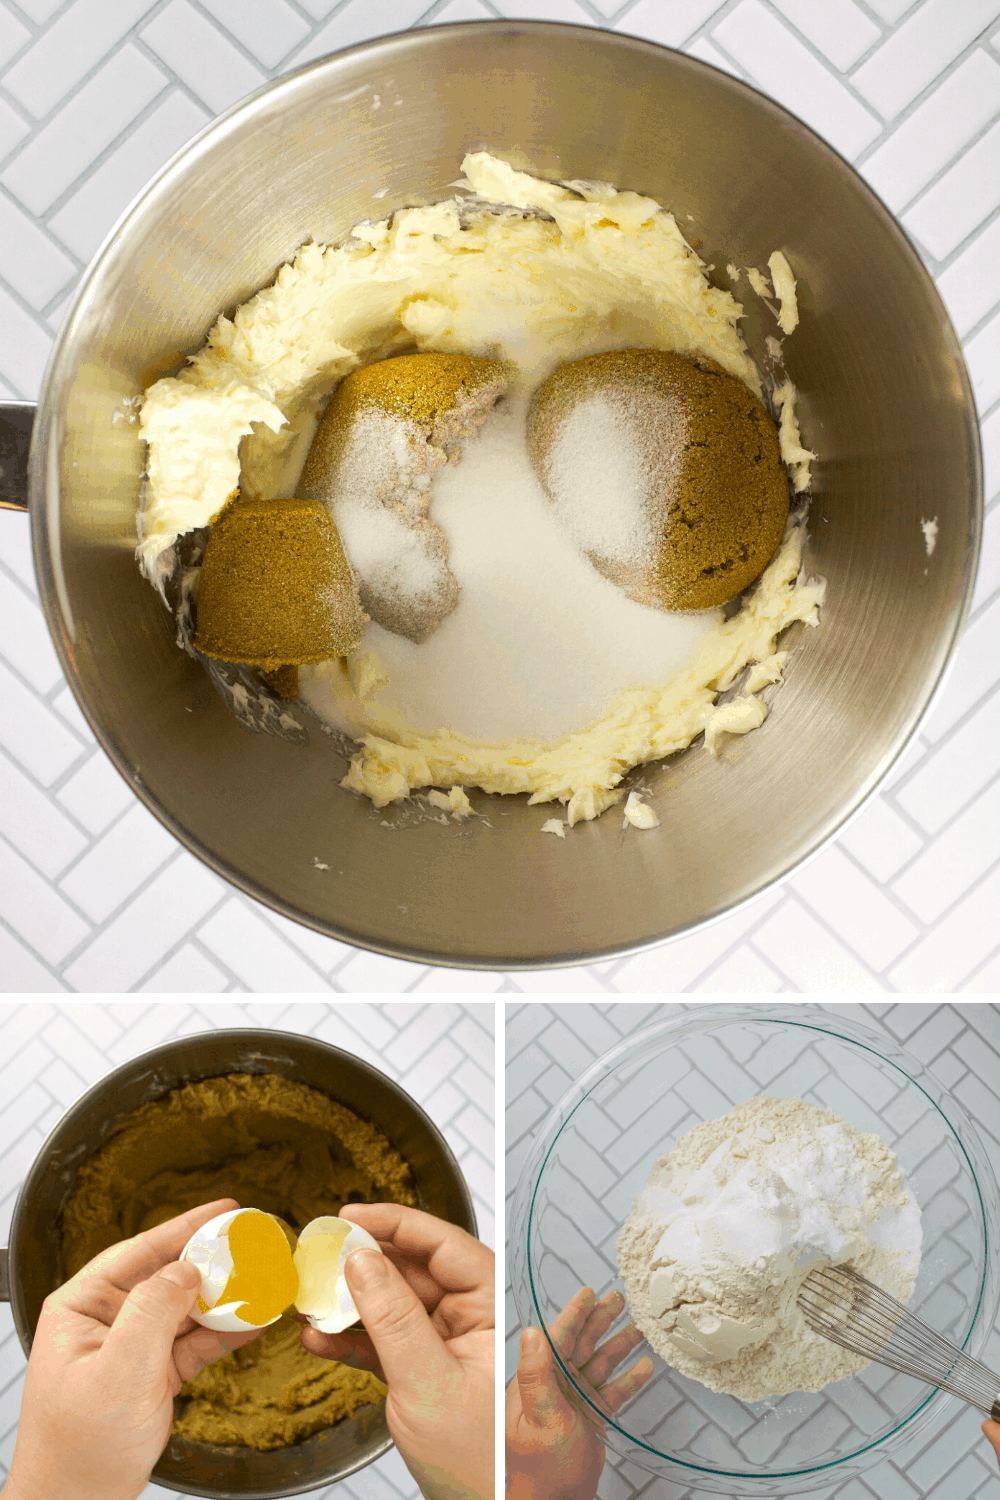 Baking Cookies Step by Step